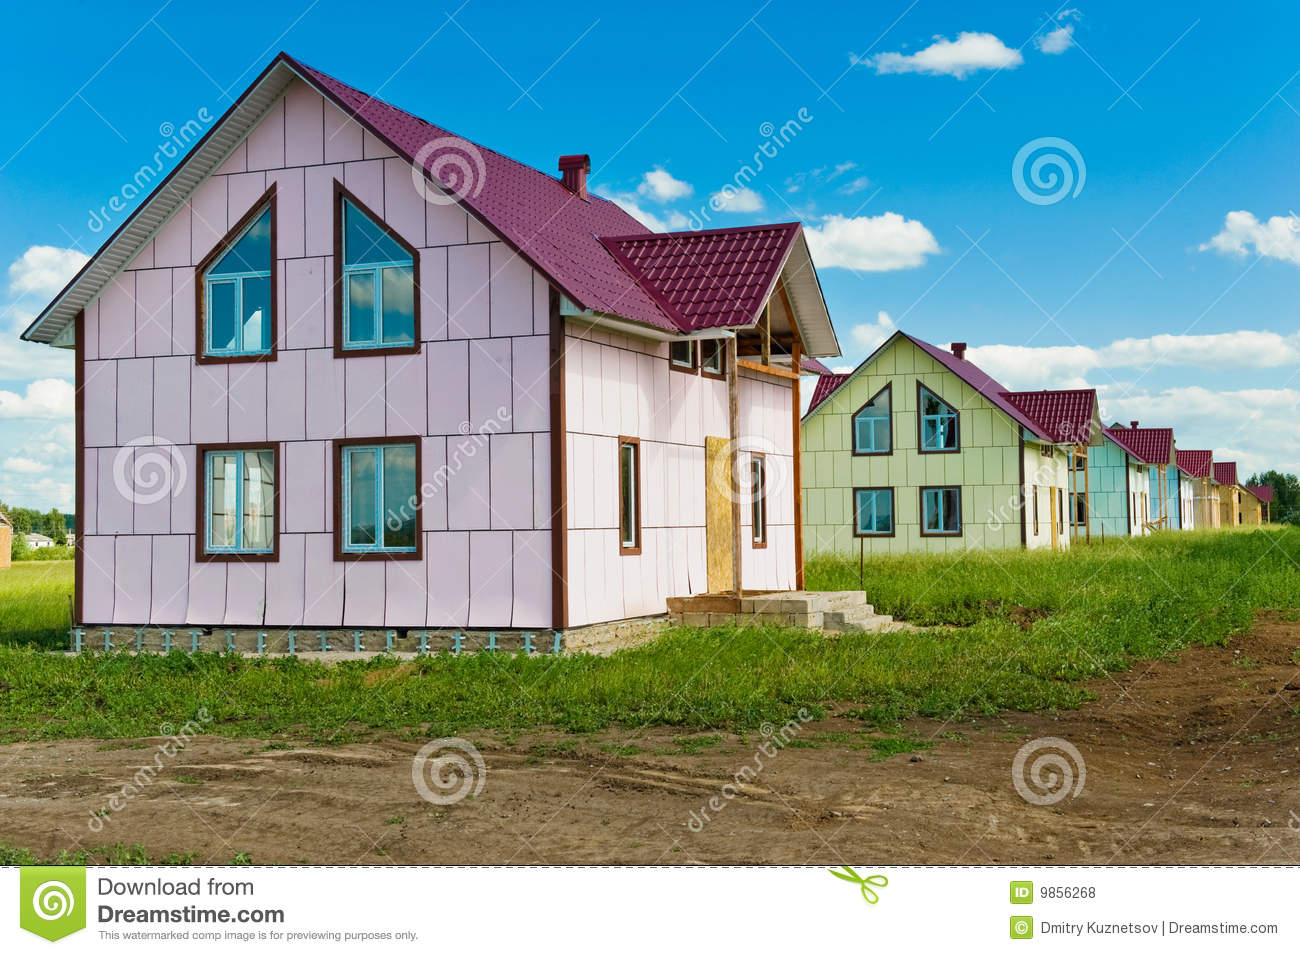 New country homes for sale royalty free stock photos for New country homes